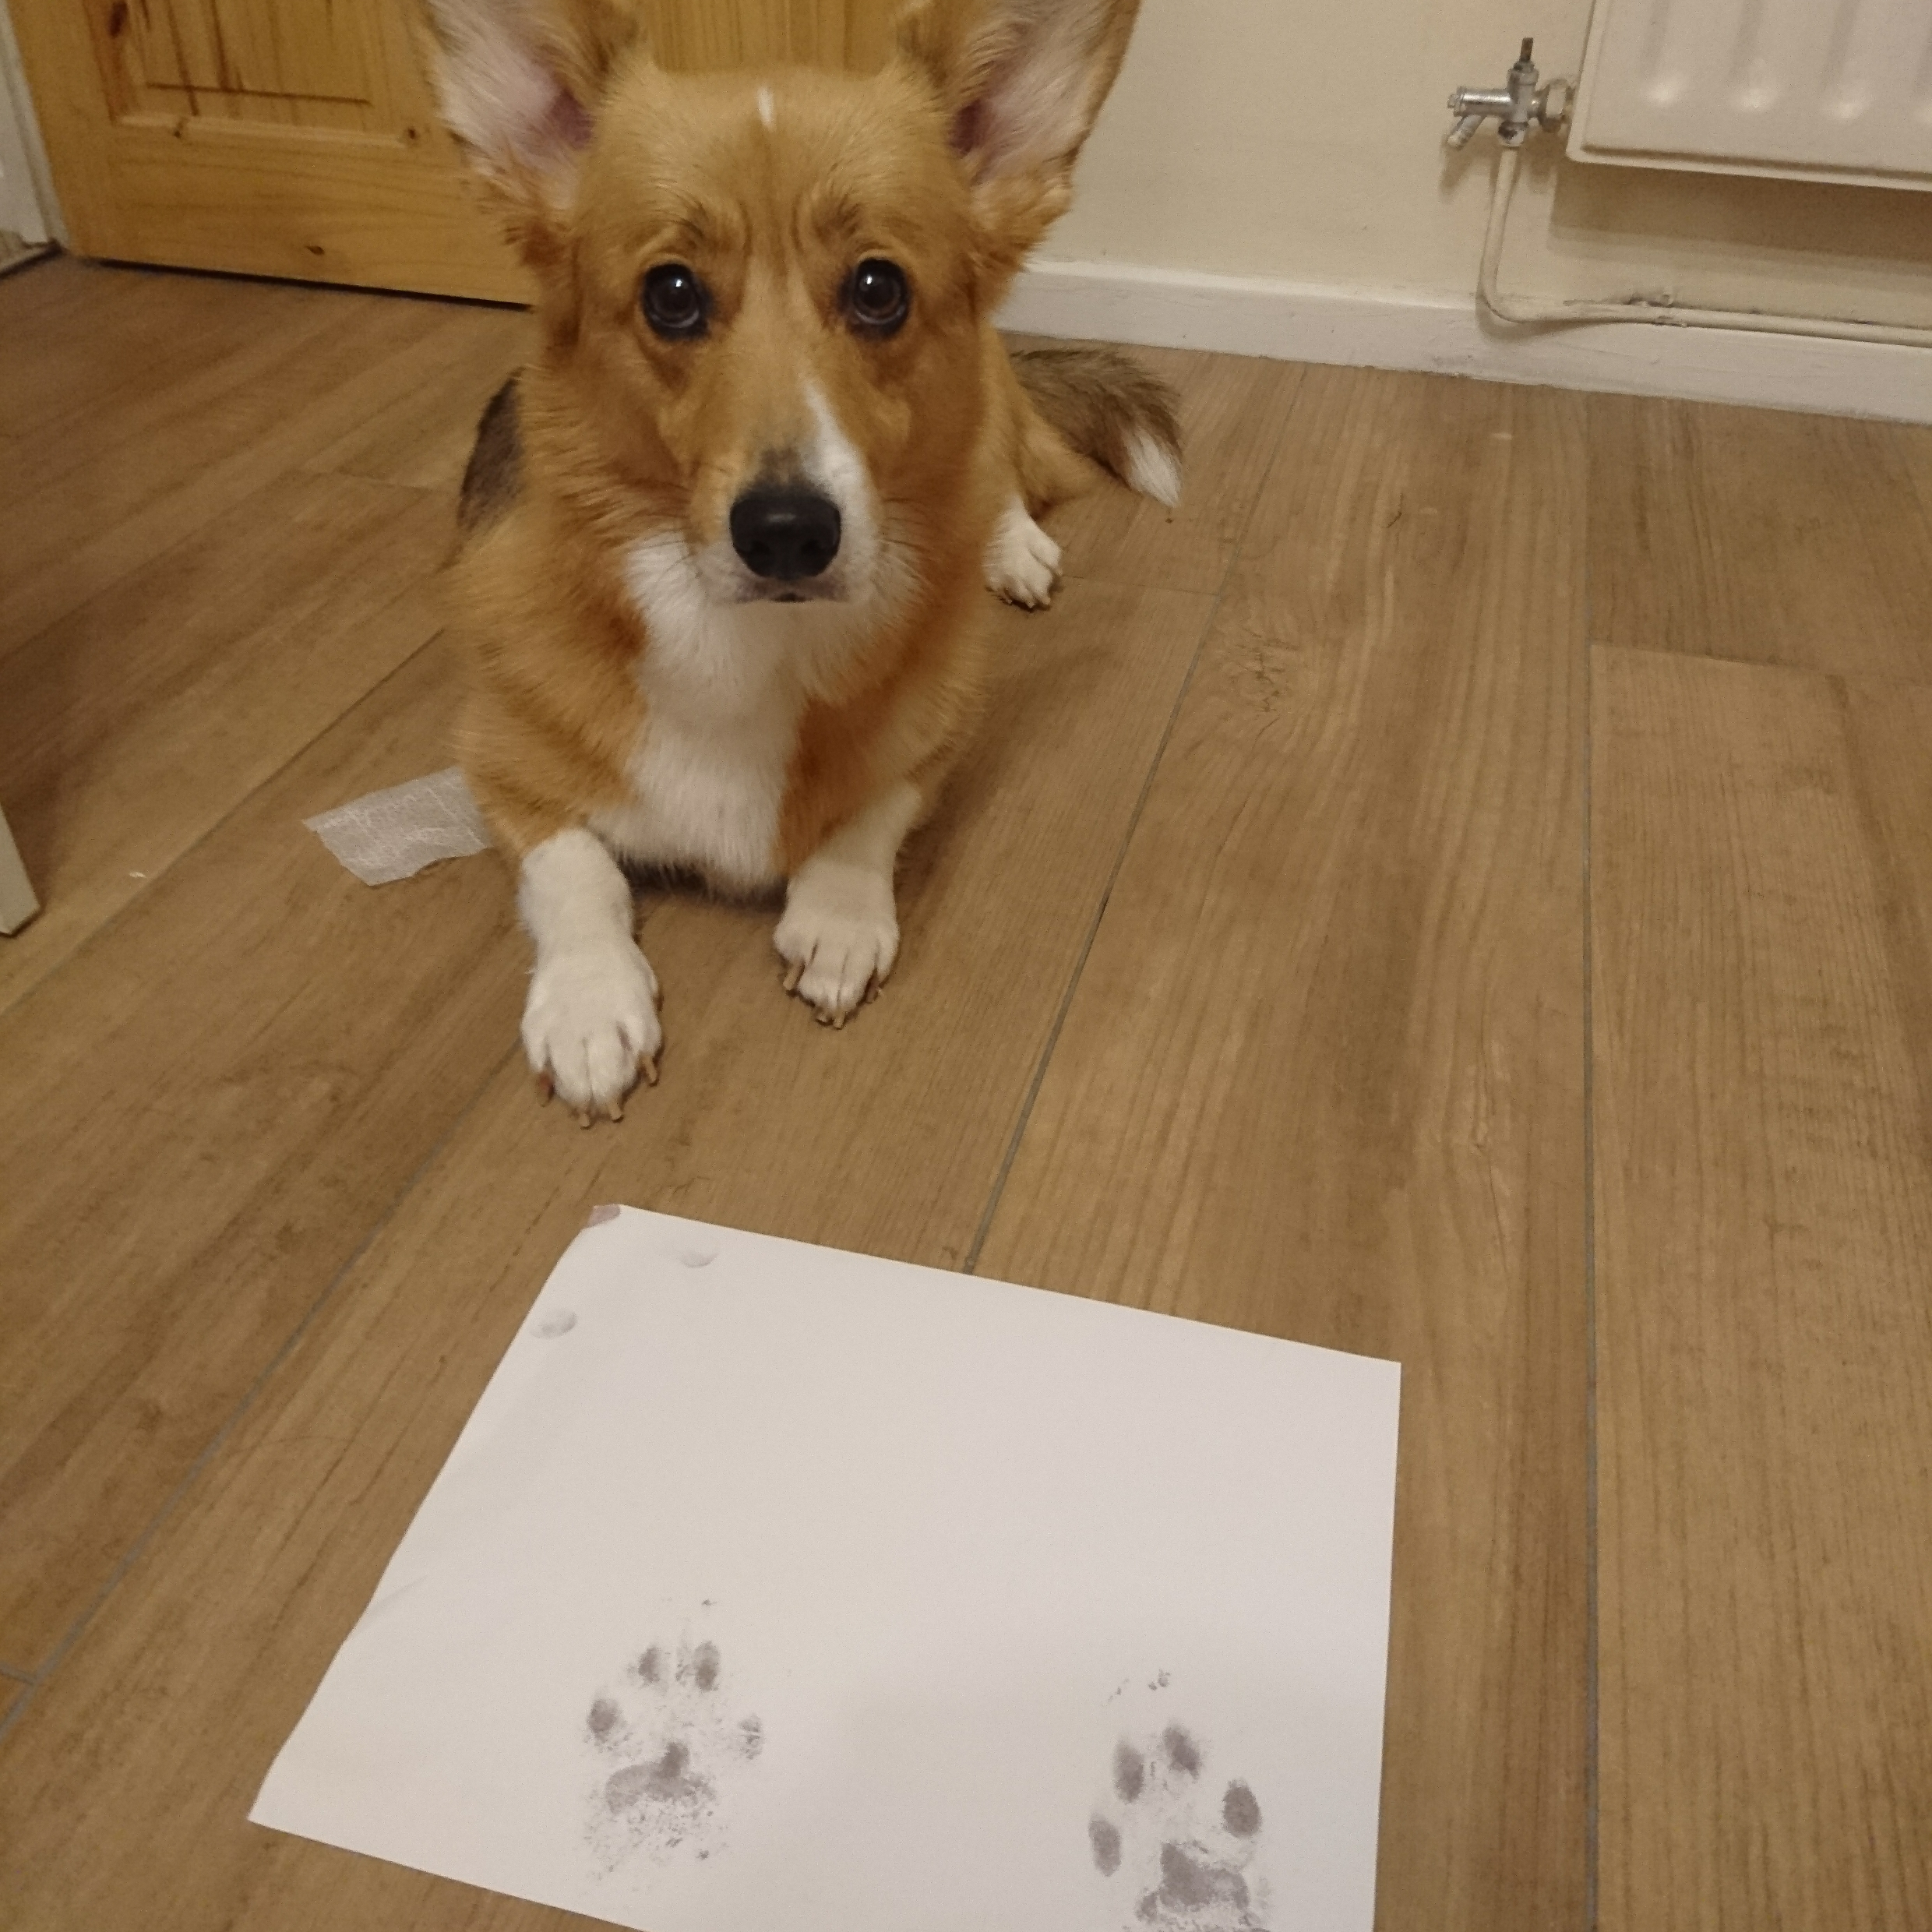 Wirral the Corgi dog with her finished inkless paw prints